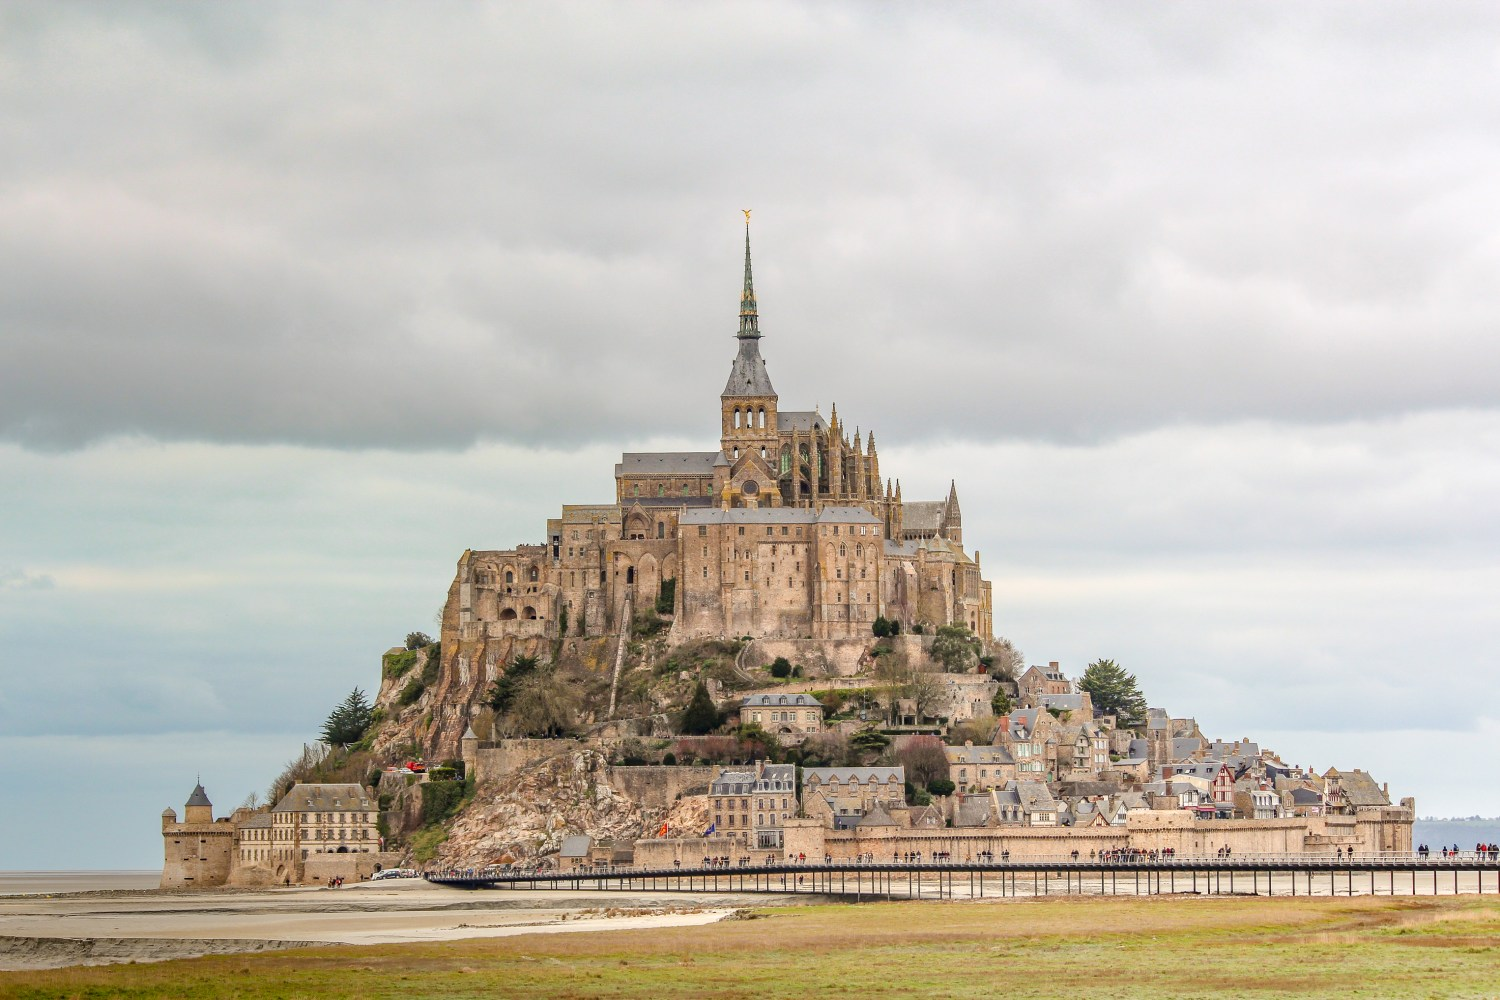 The Magical Mont Saint-Michel Monastery in Normandy